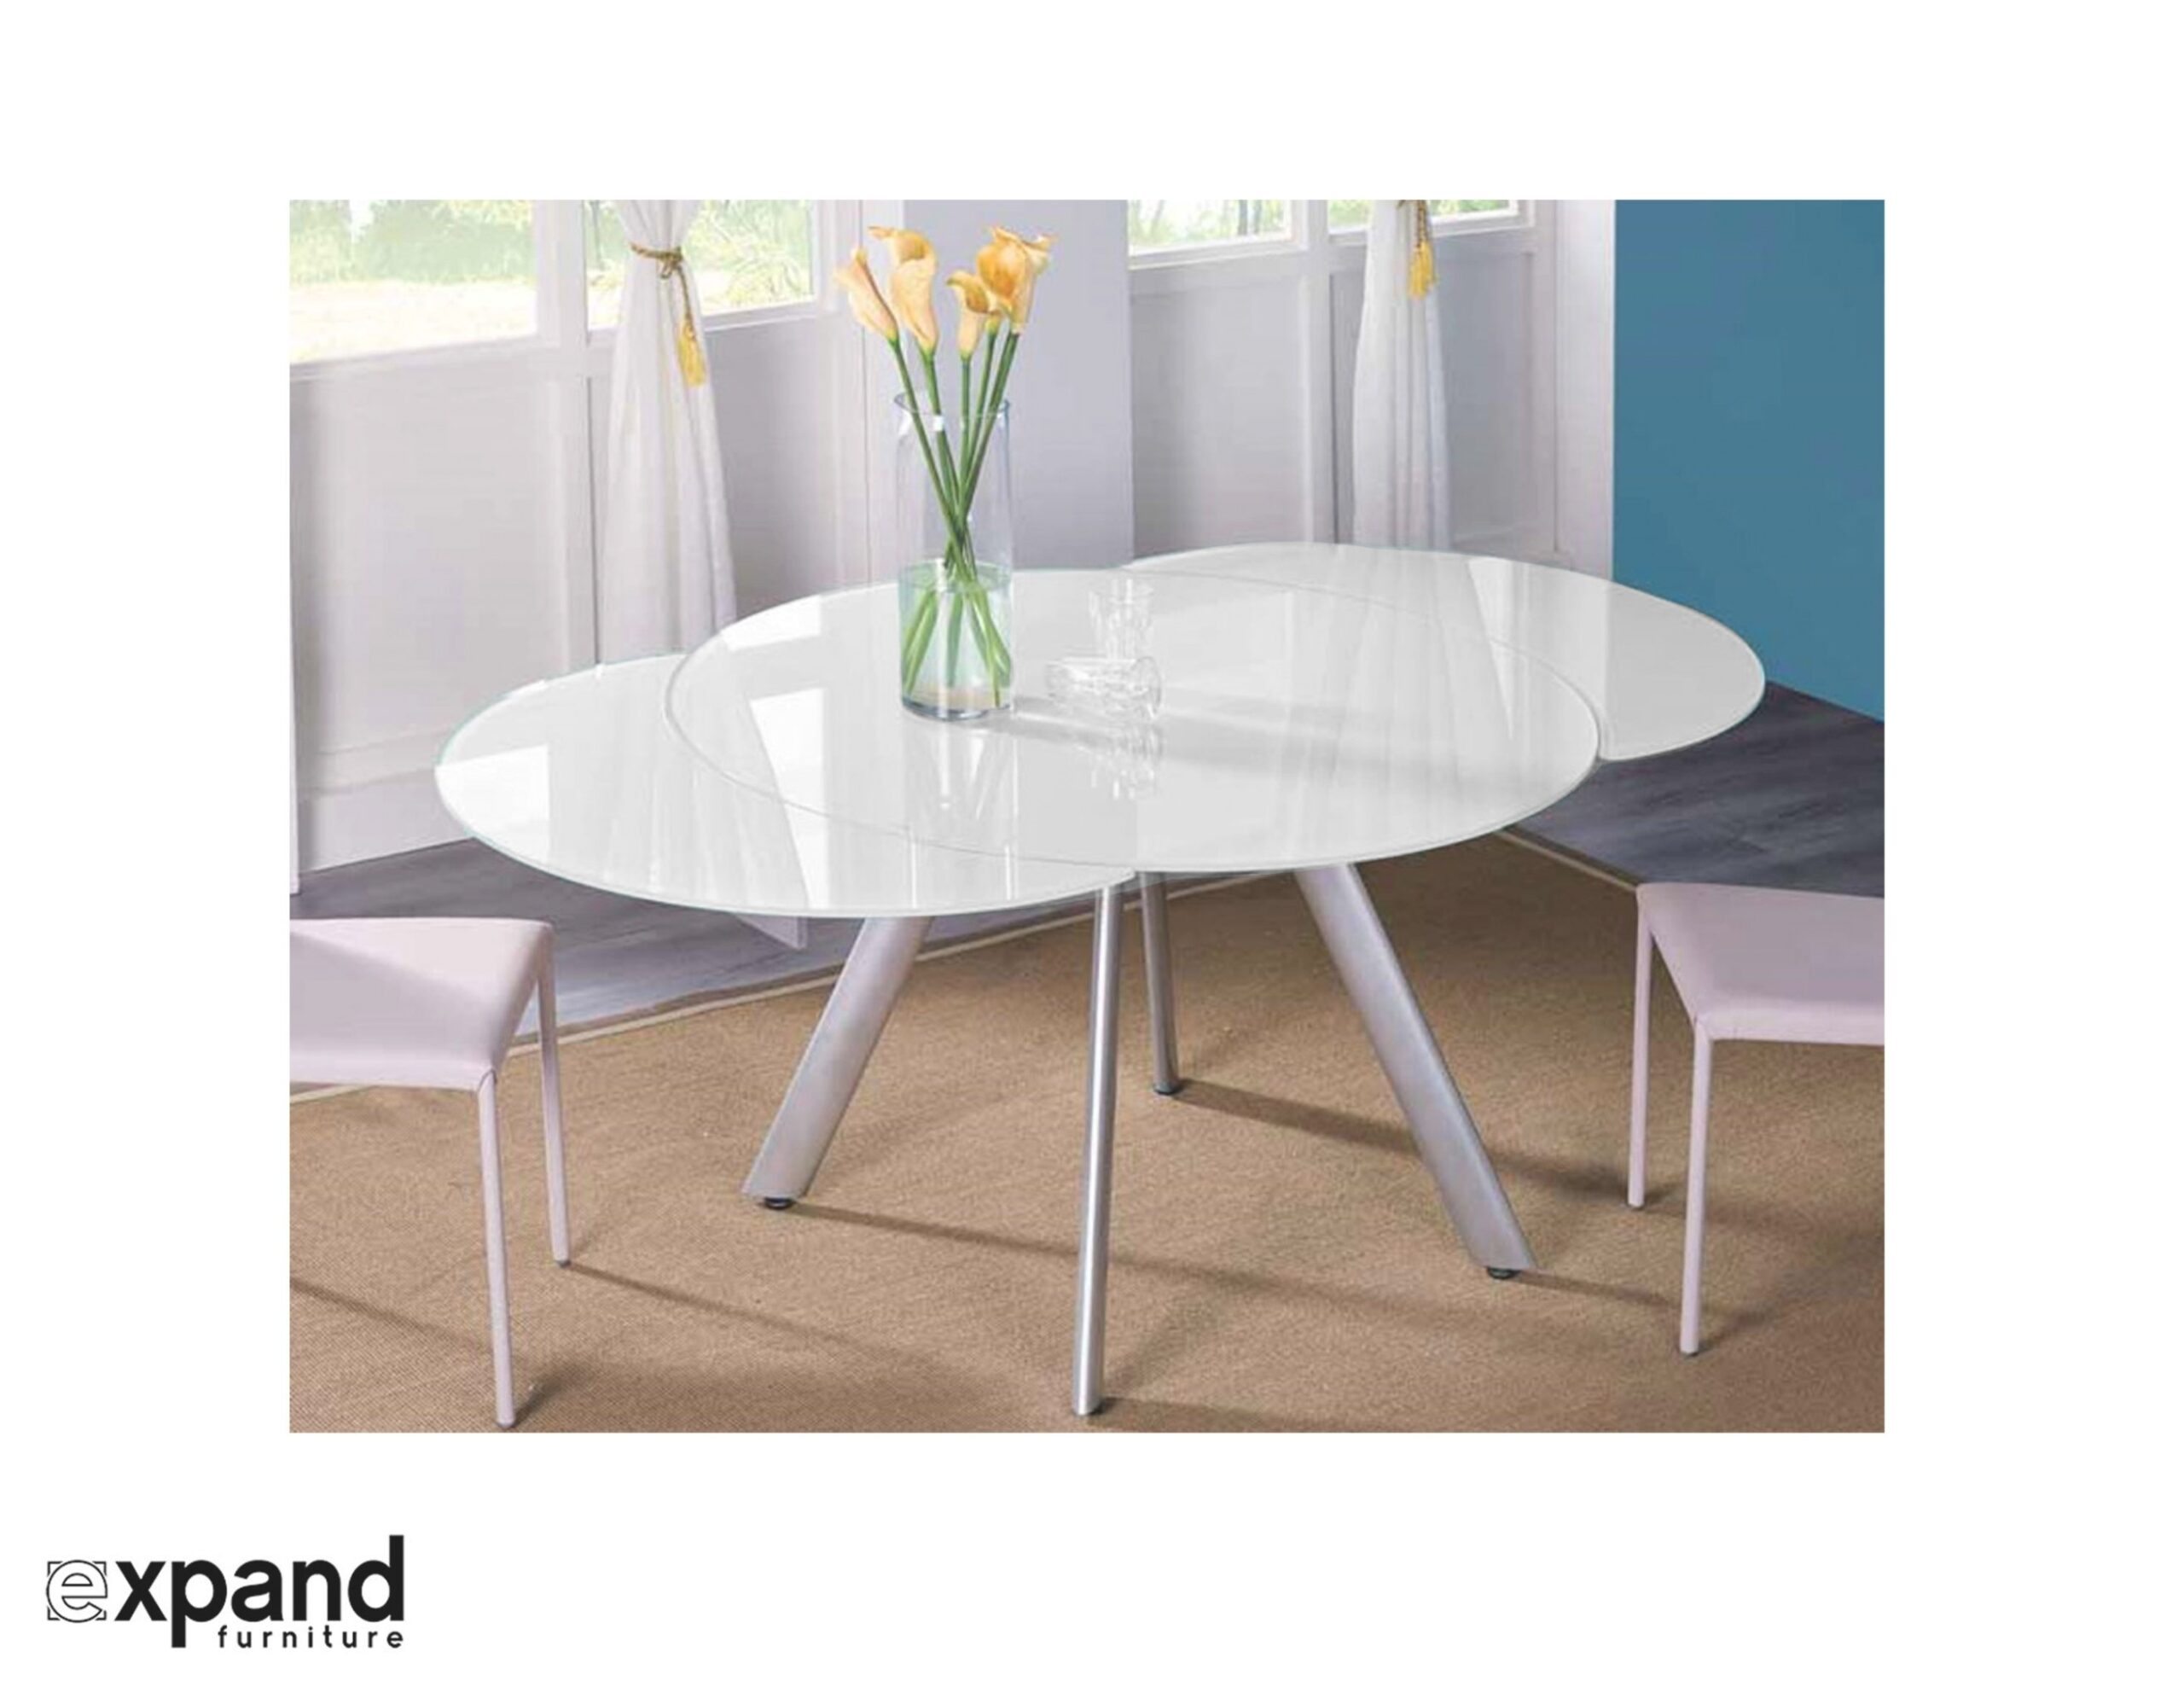 The Butterfly Expandable Round Glass Dining Table - Expand within Round Glass Dining Table